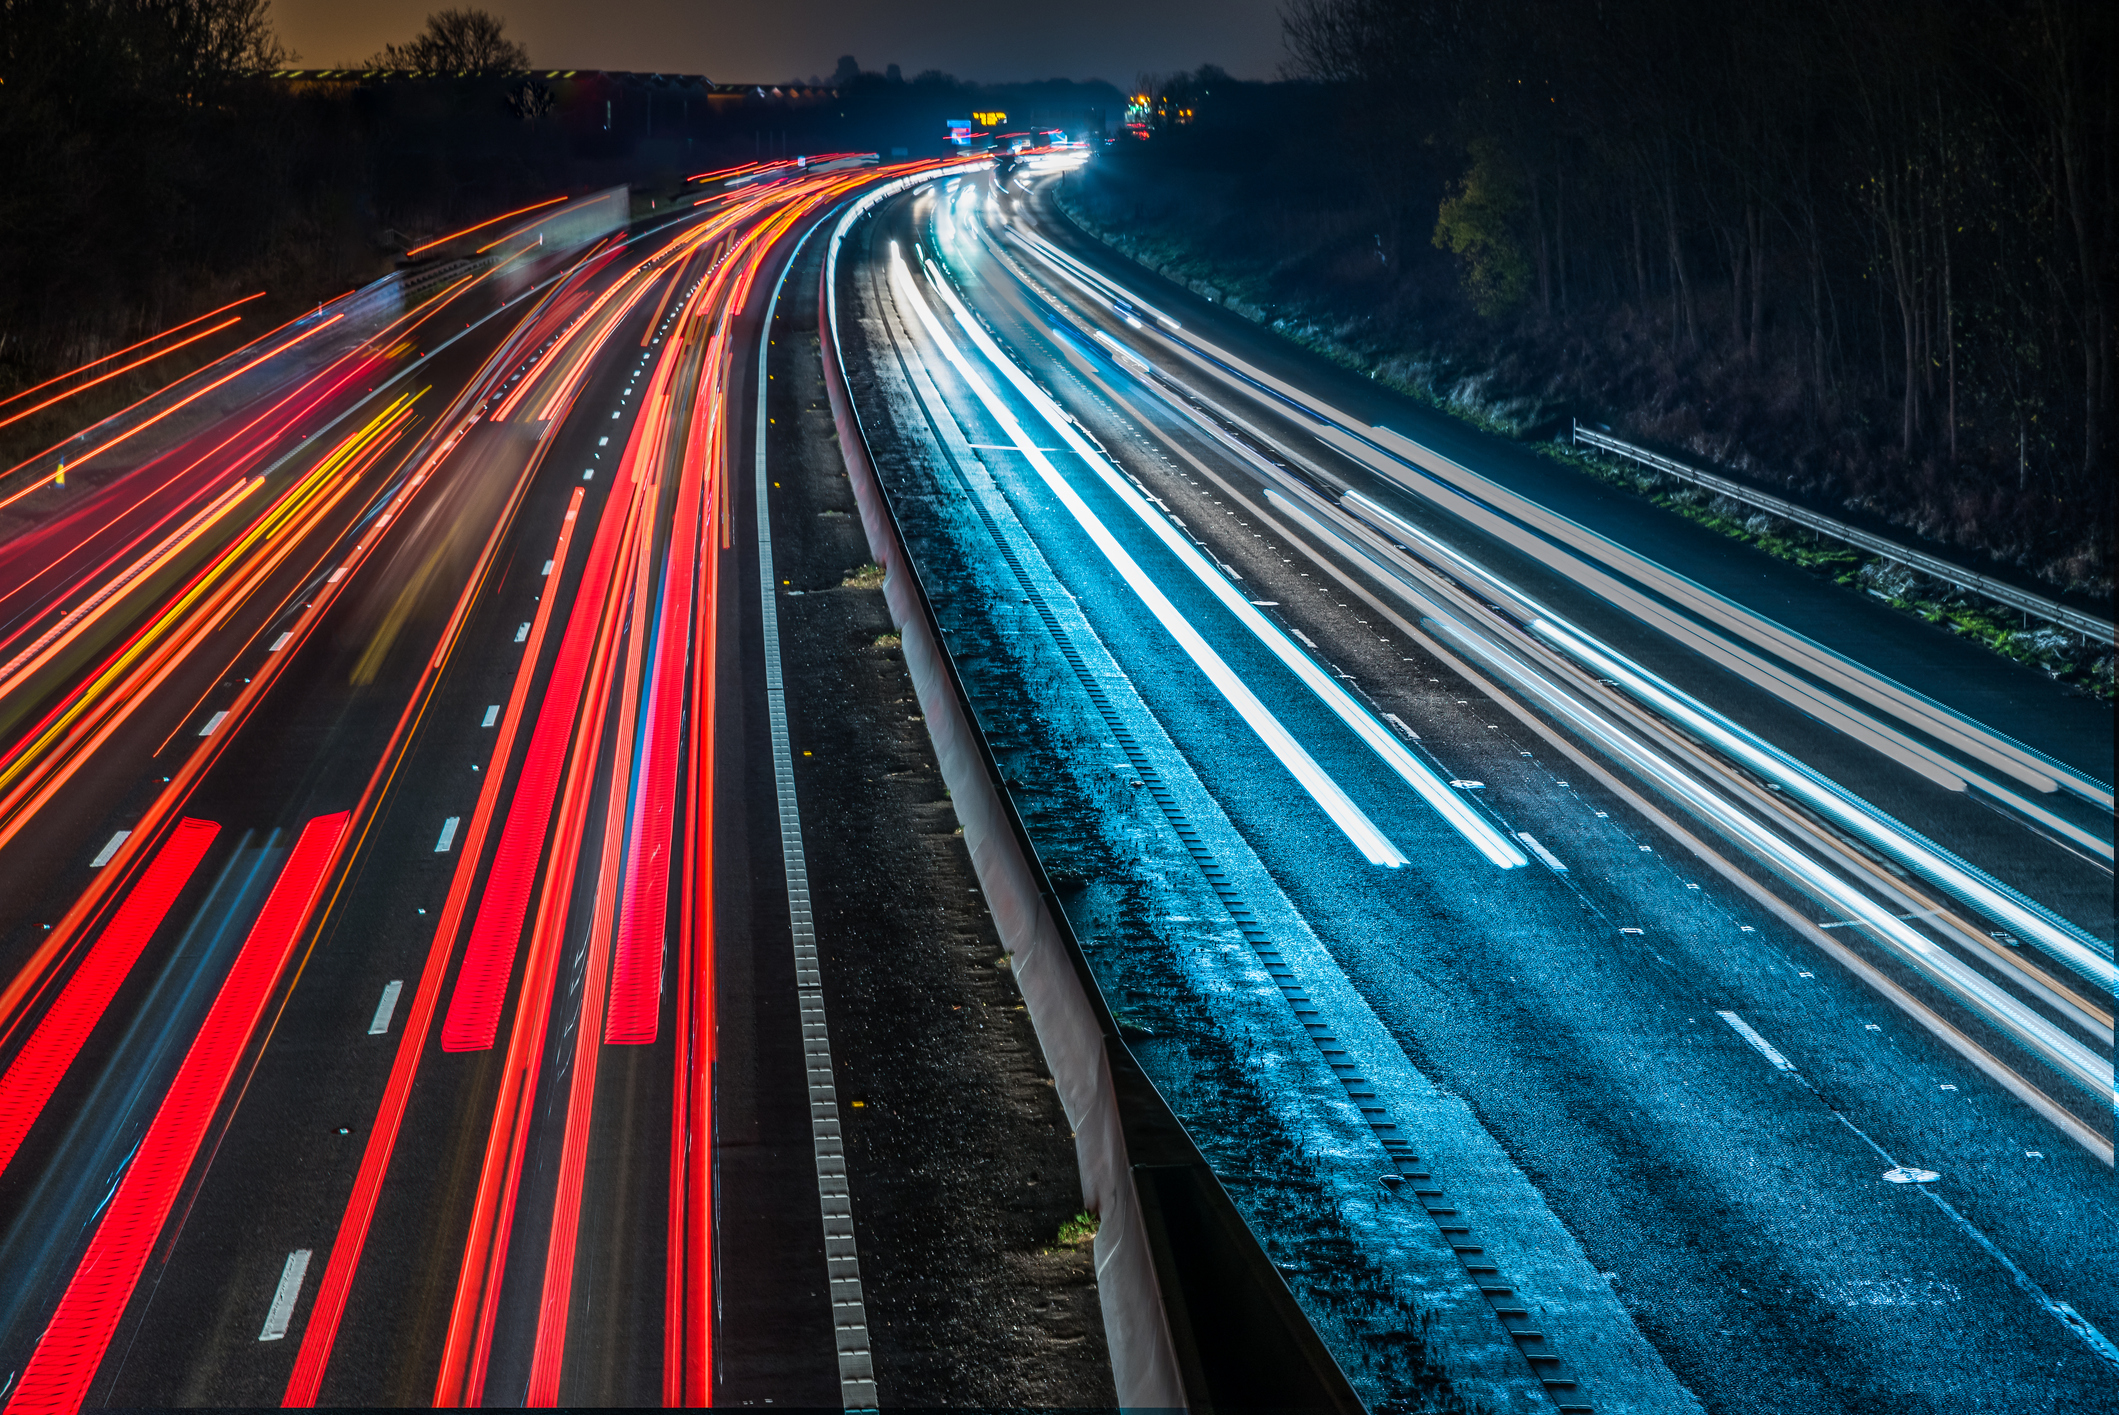 Night View of UK Motorway Highway